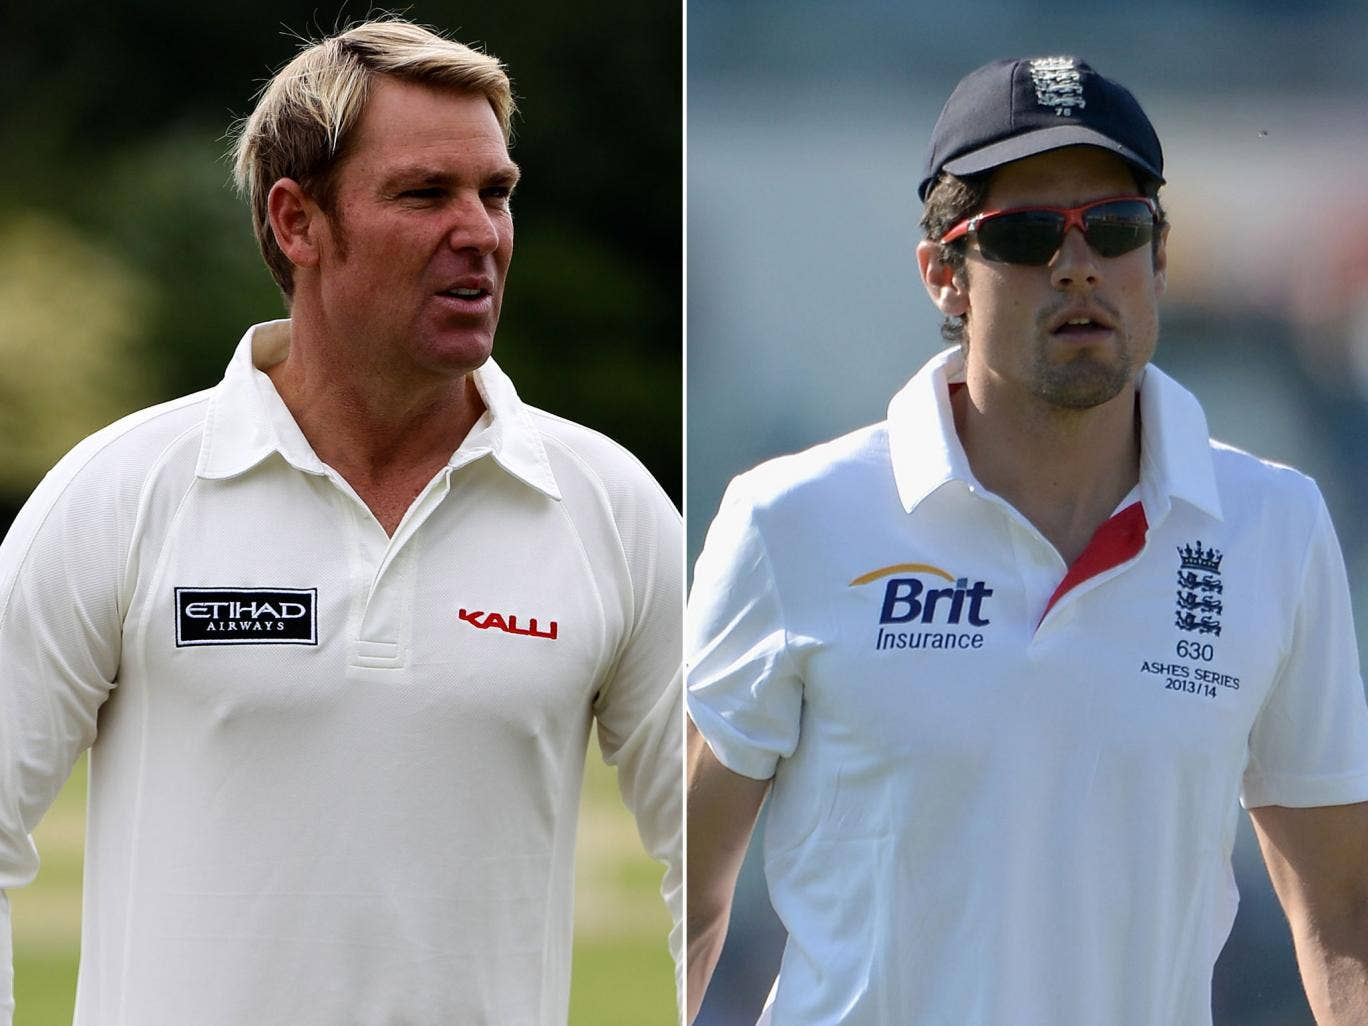 Shane Warne, left, said the conservative tactics of the England captain, Alastair Cook, right, could cost his team dear against Australia